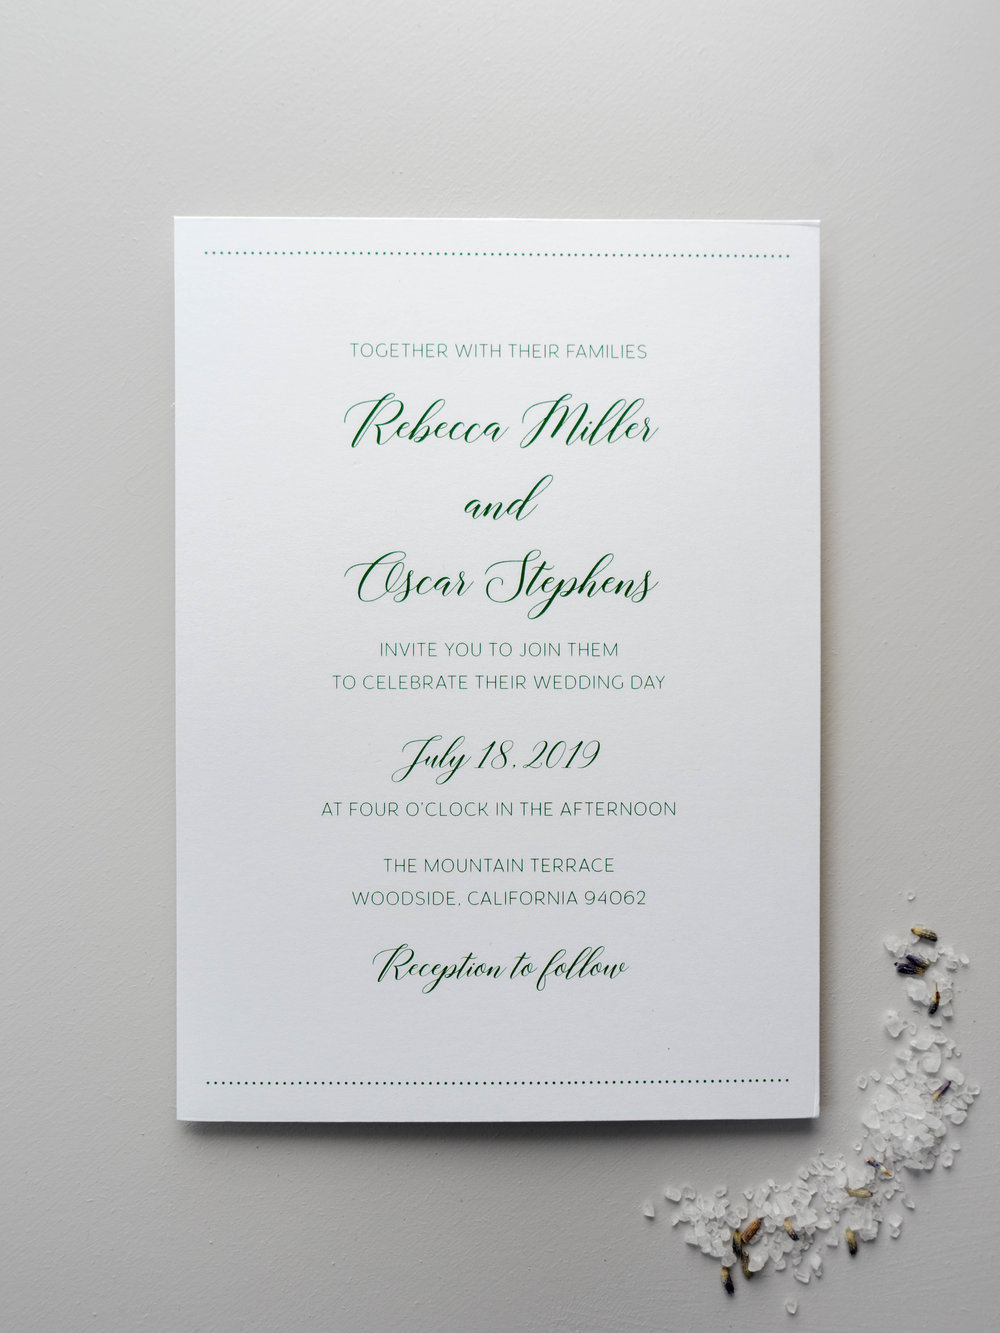 Simple Green Wedding Invitation by Just Jurf-01376.jpg